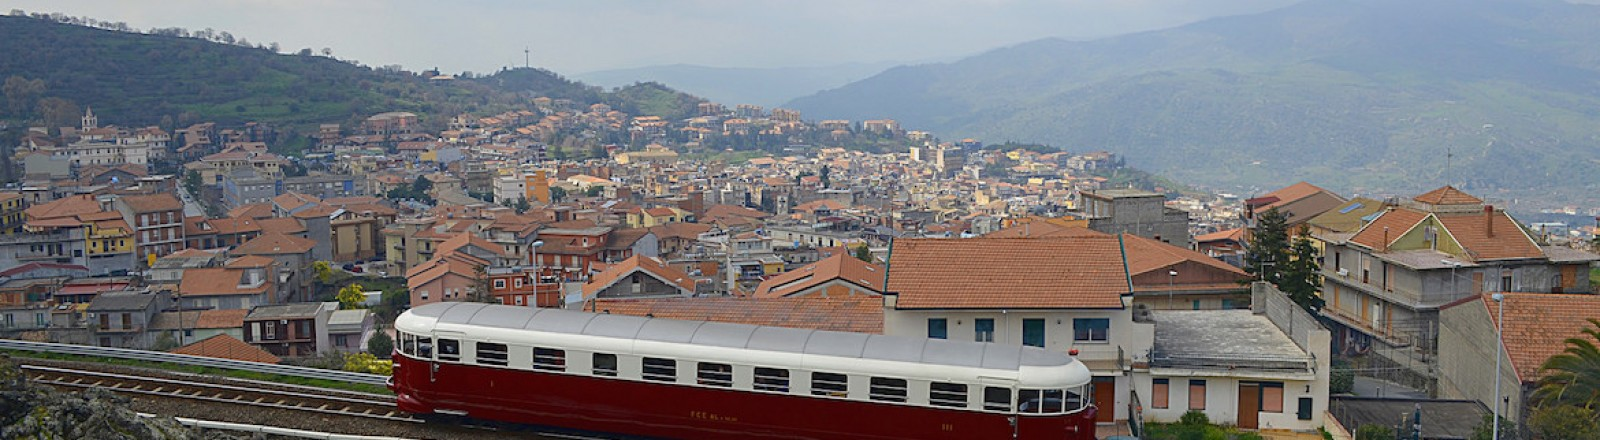 d409ee1f4bd74 Circumetnea - A travel around the Mount Etna in train